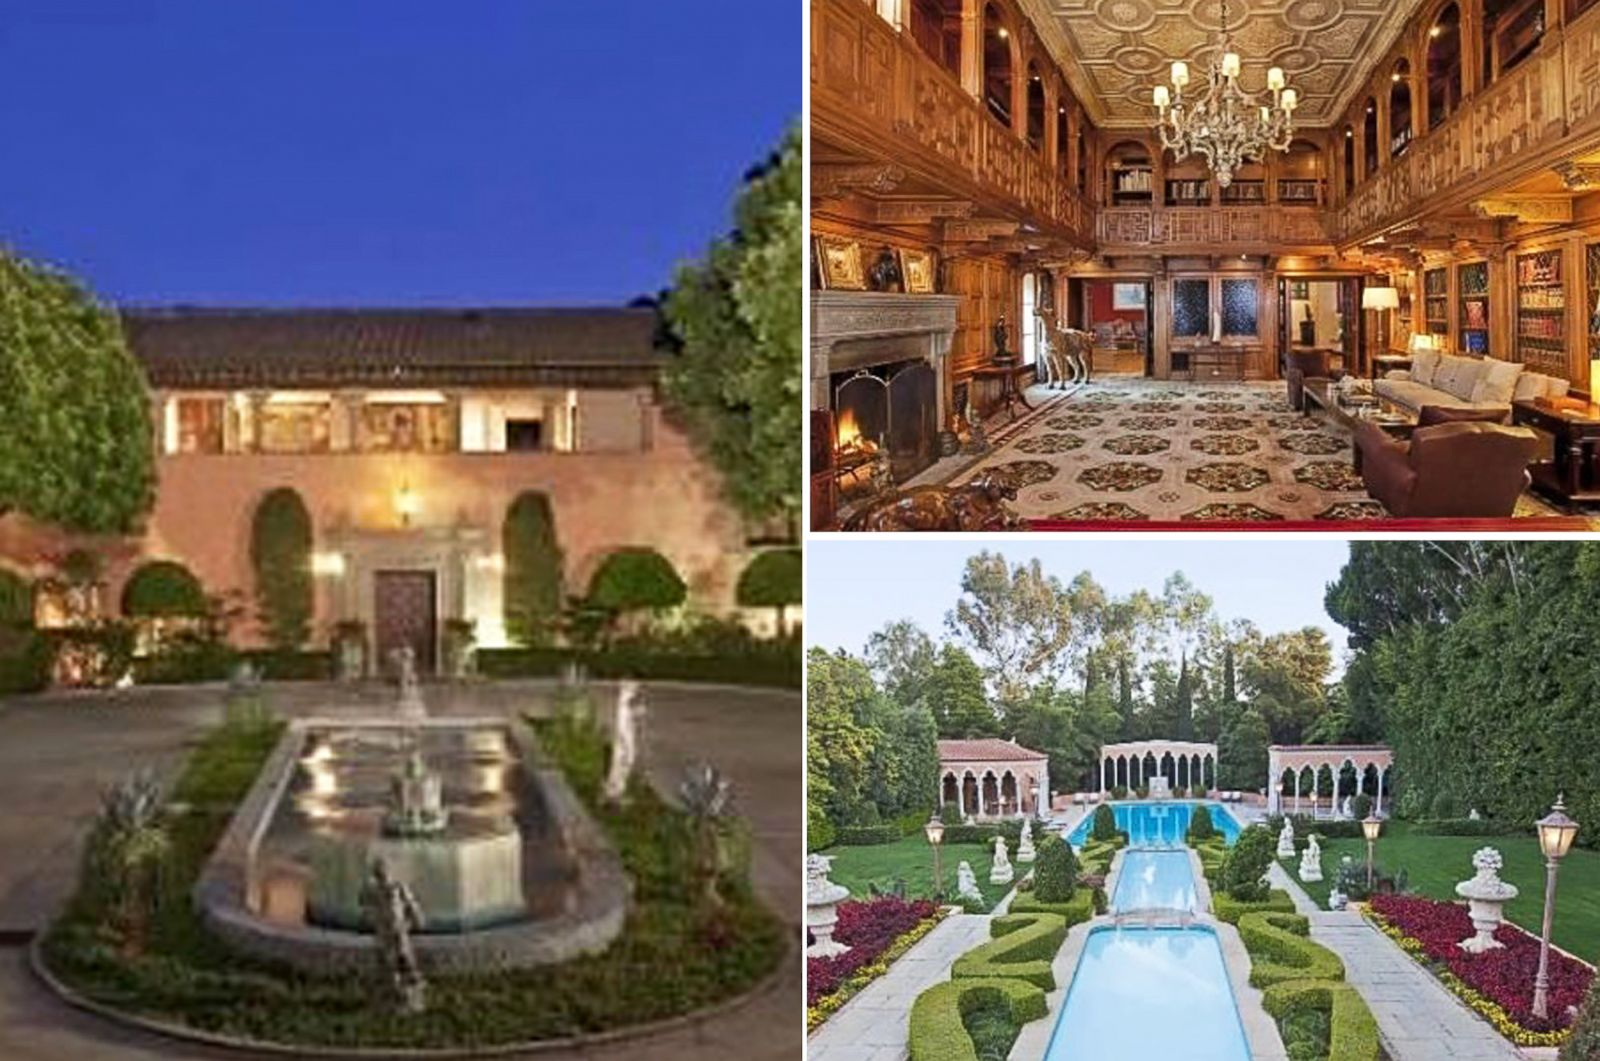 Famous godfather house for sale in beverly hills picture for Famous homes in beverly hills